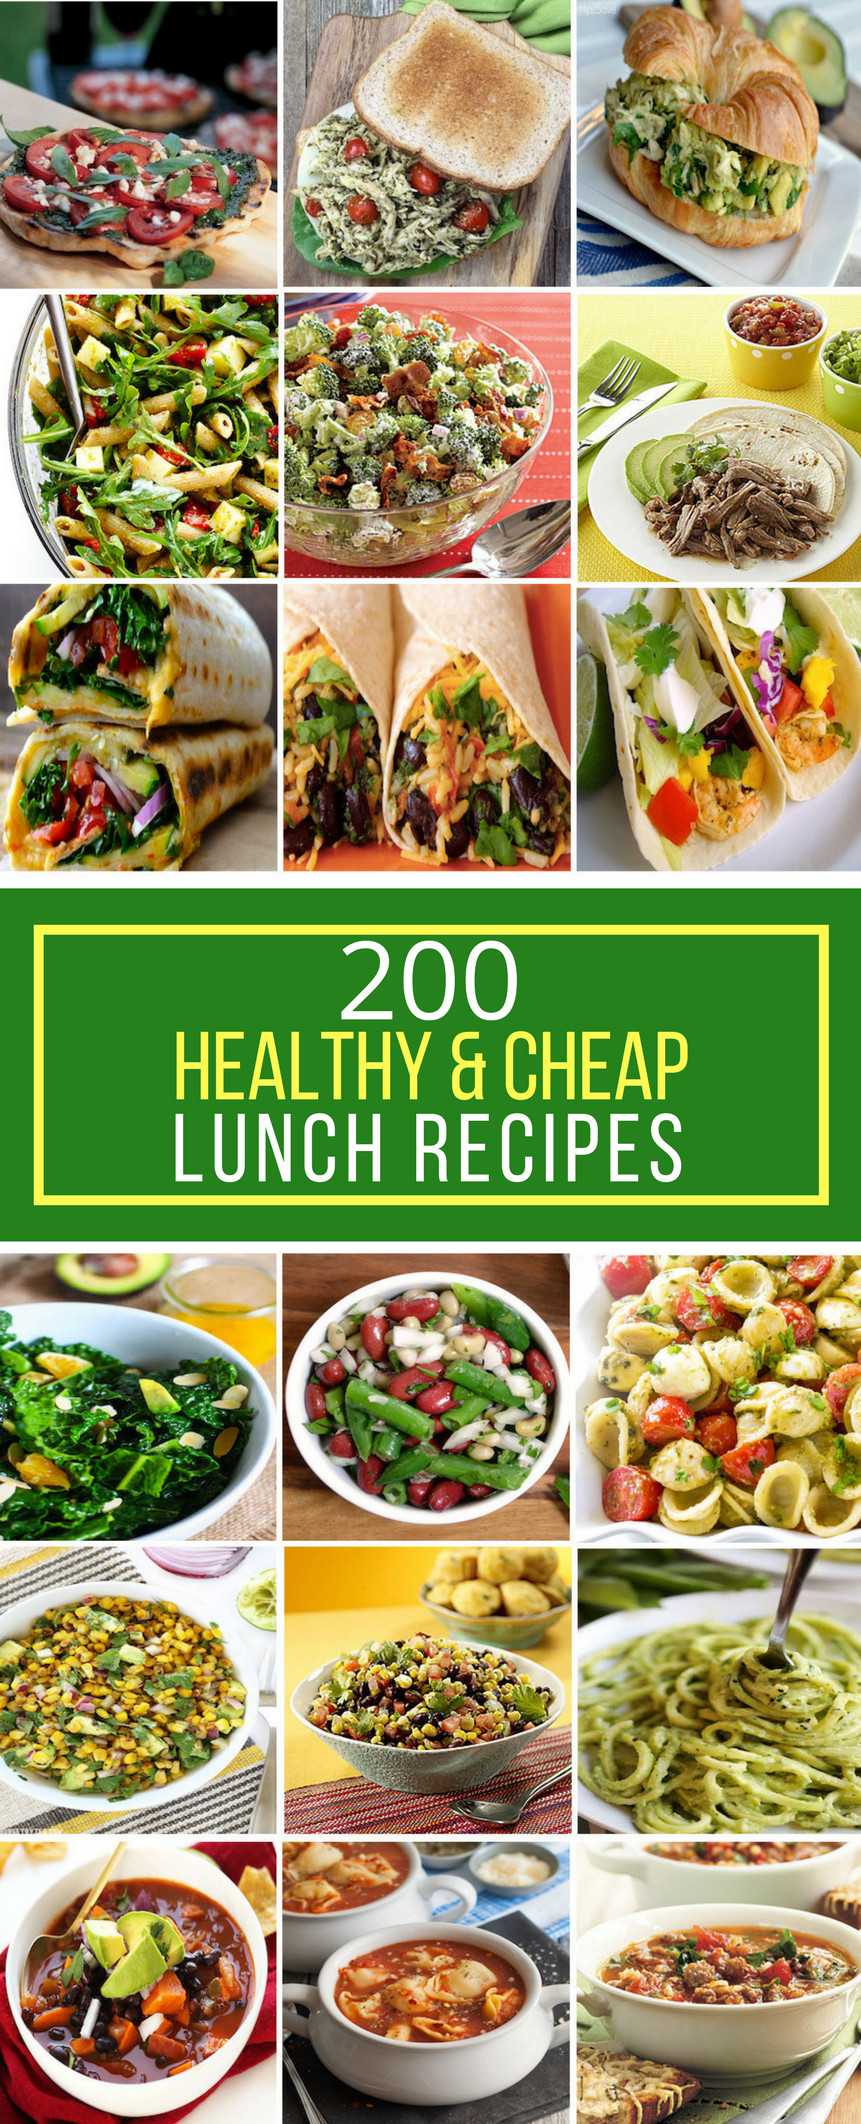 Cheap And Healthy Lunches  200 Healthy & Cheap Lunch Recipes Prudent Penny Pincher